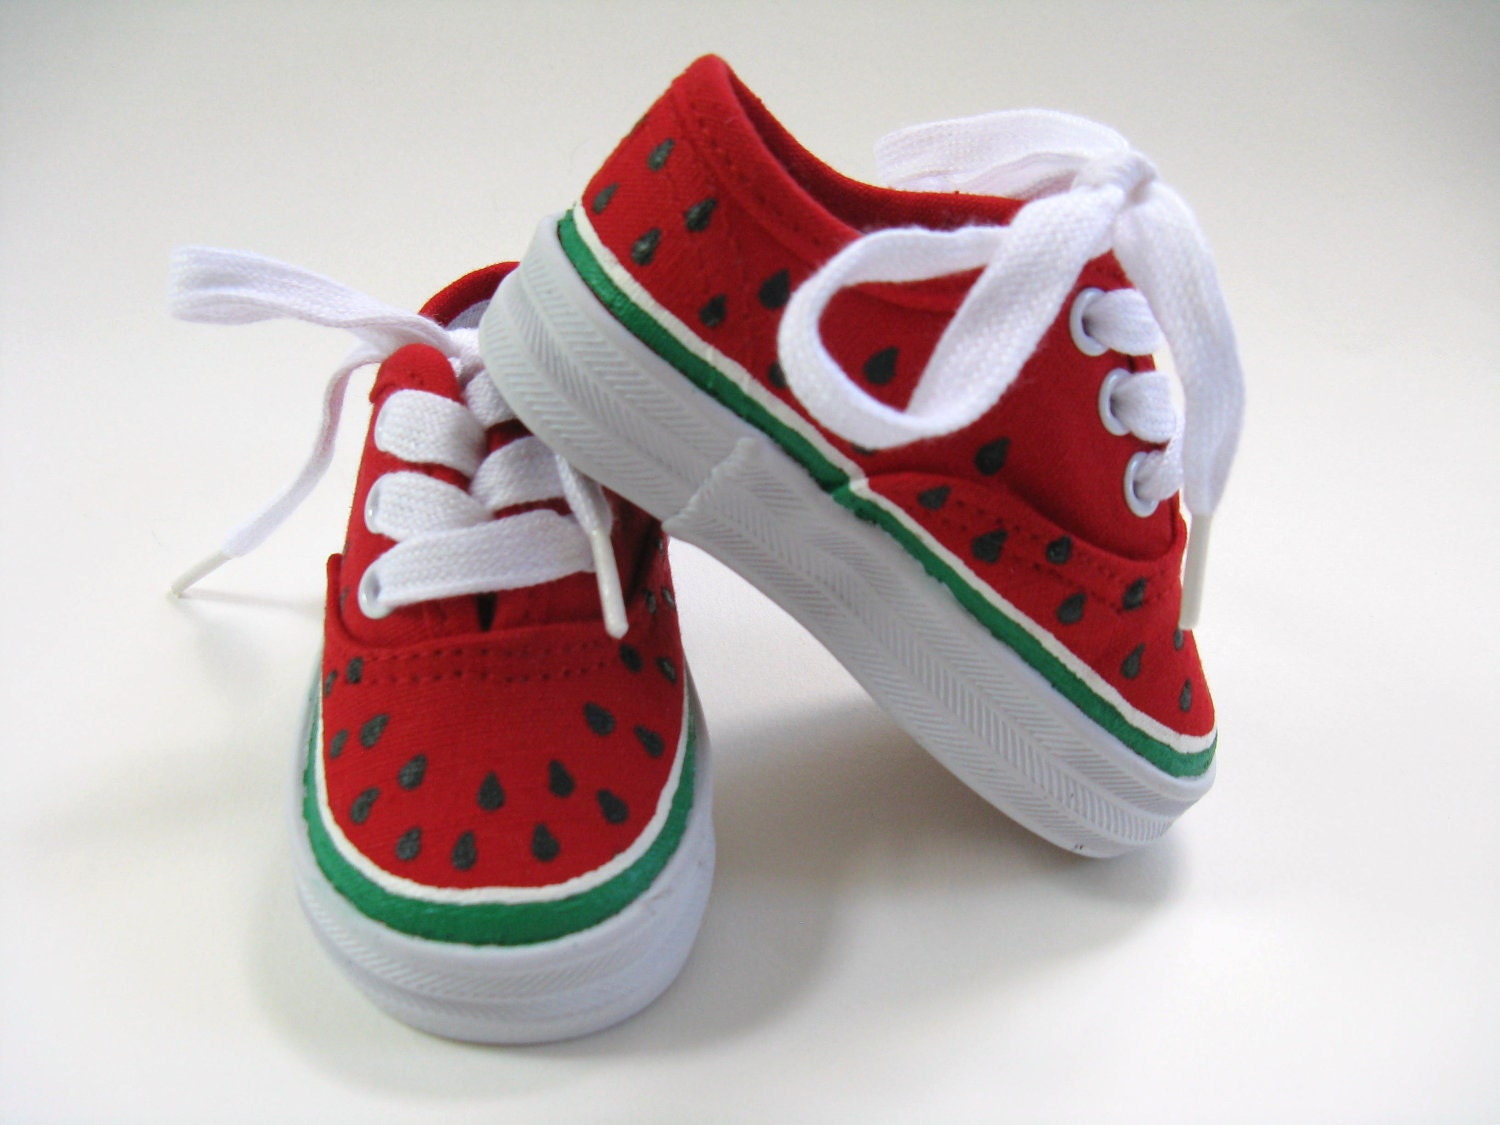 Girls Watermelon Shoes, Baby and Toddler, Hand Painted, Kids, Red  Canvas Sneakers - boygirlboygirldesign